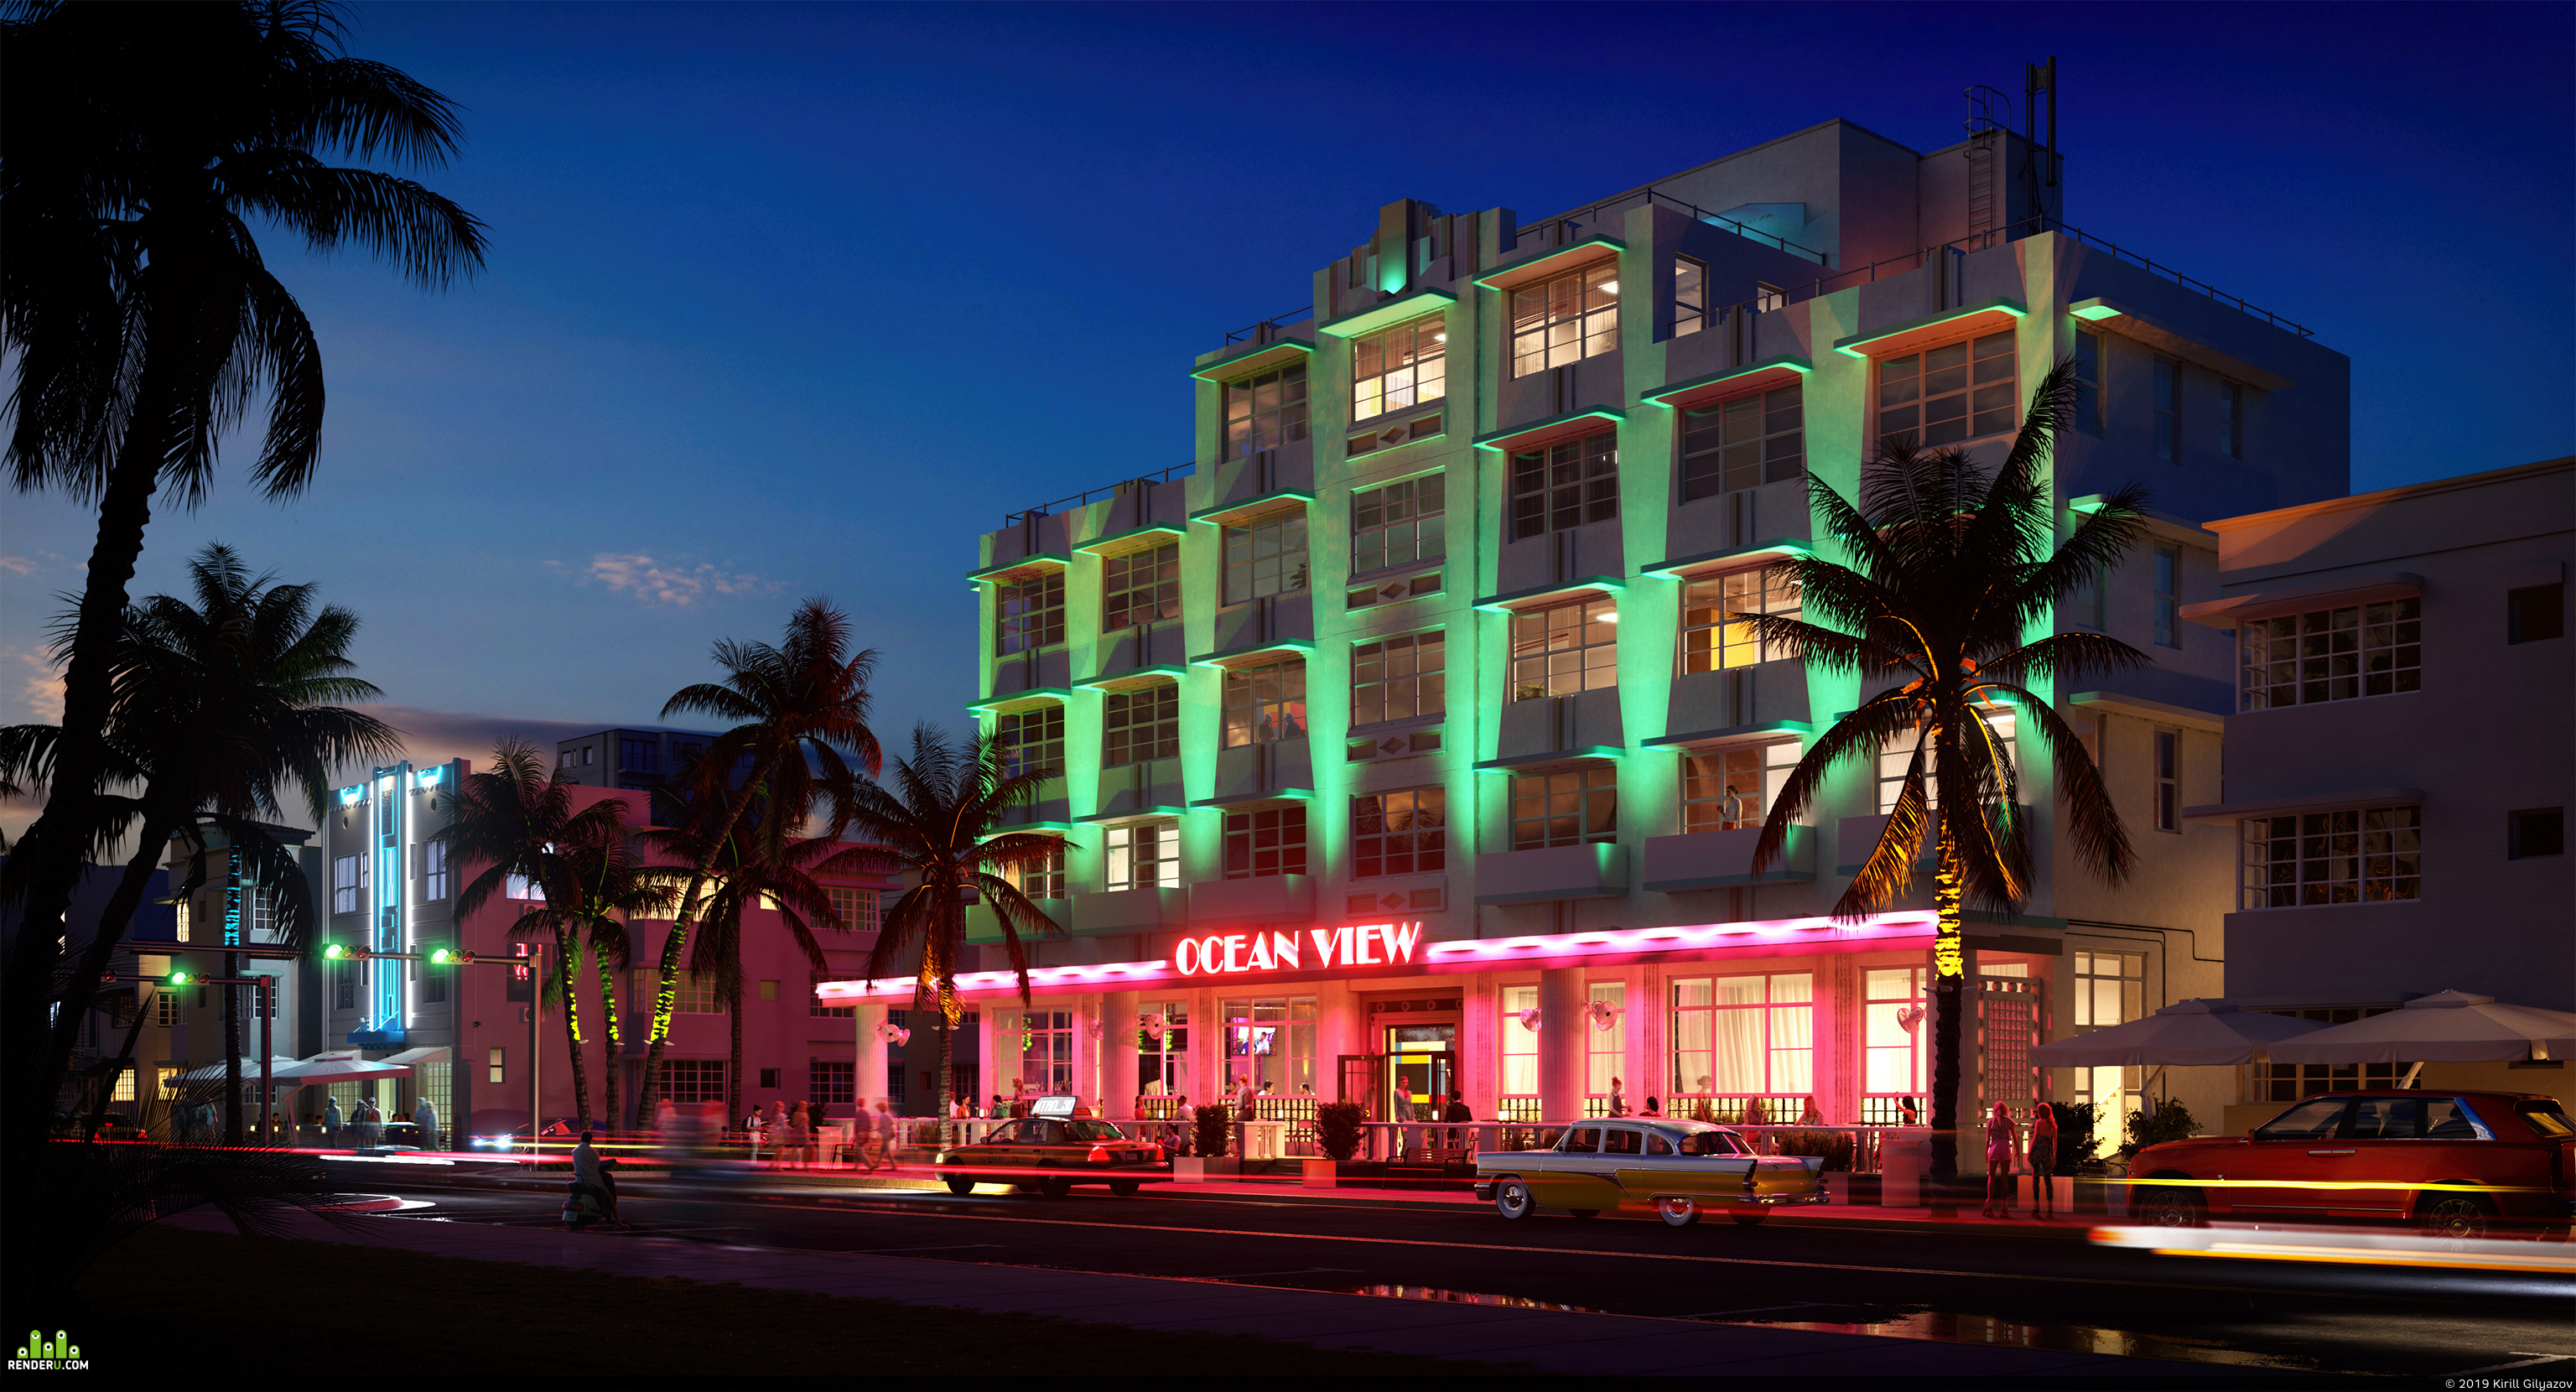 preview Ocean View hotel